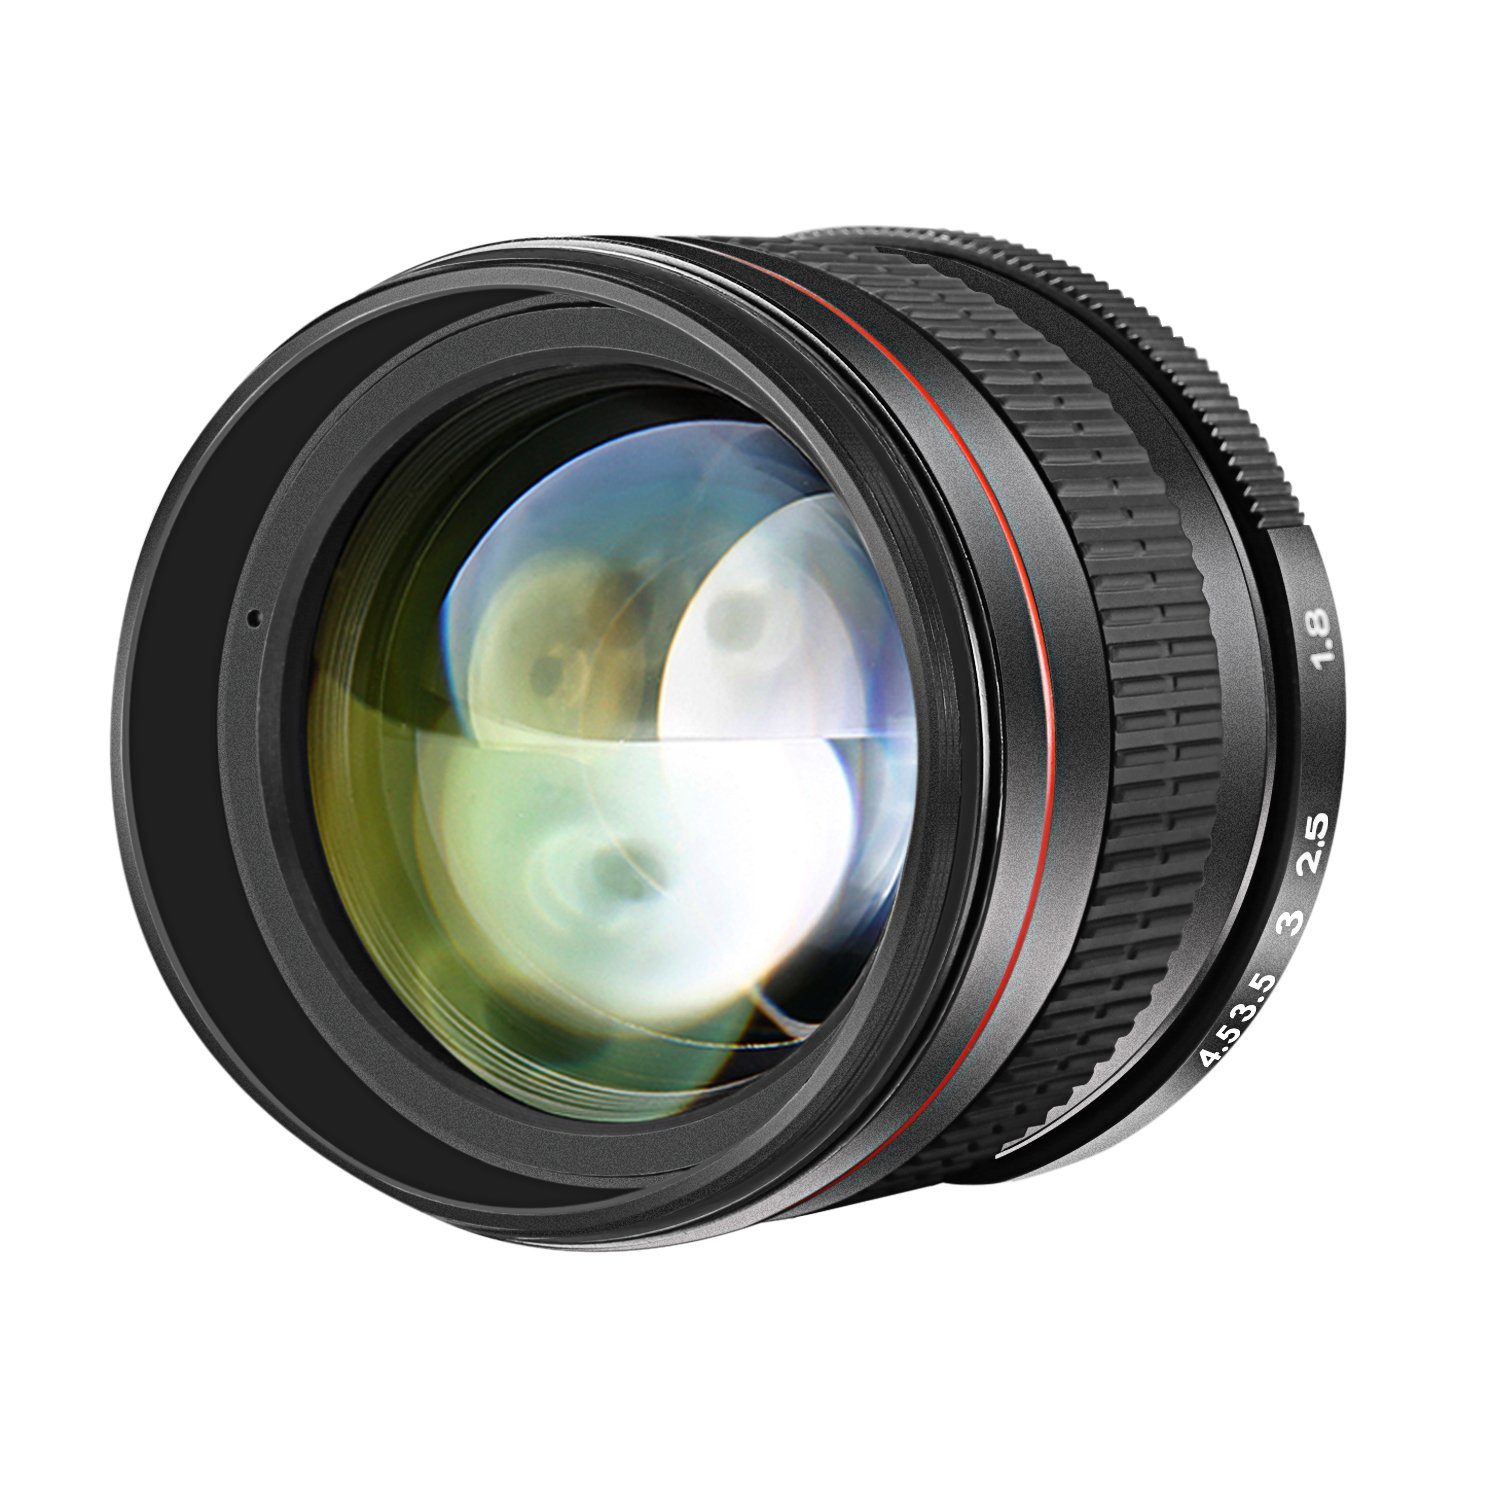 Neewer 85mm f/1.8 Portrait Aspherical Telephoto Lens for Nikon